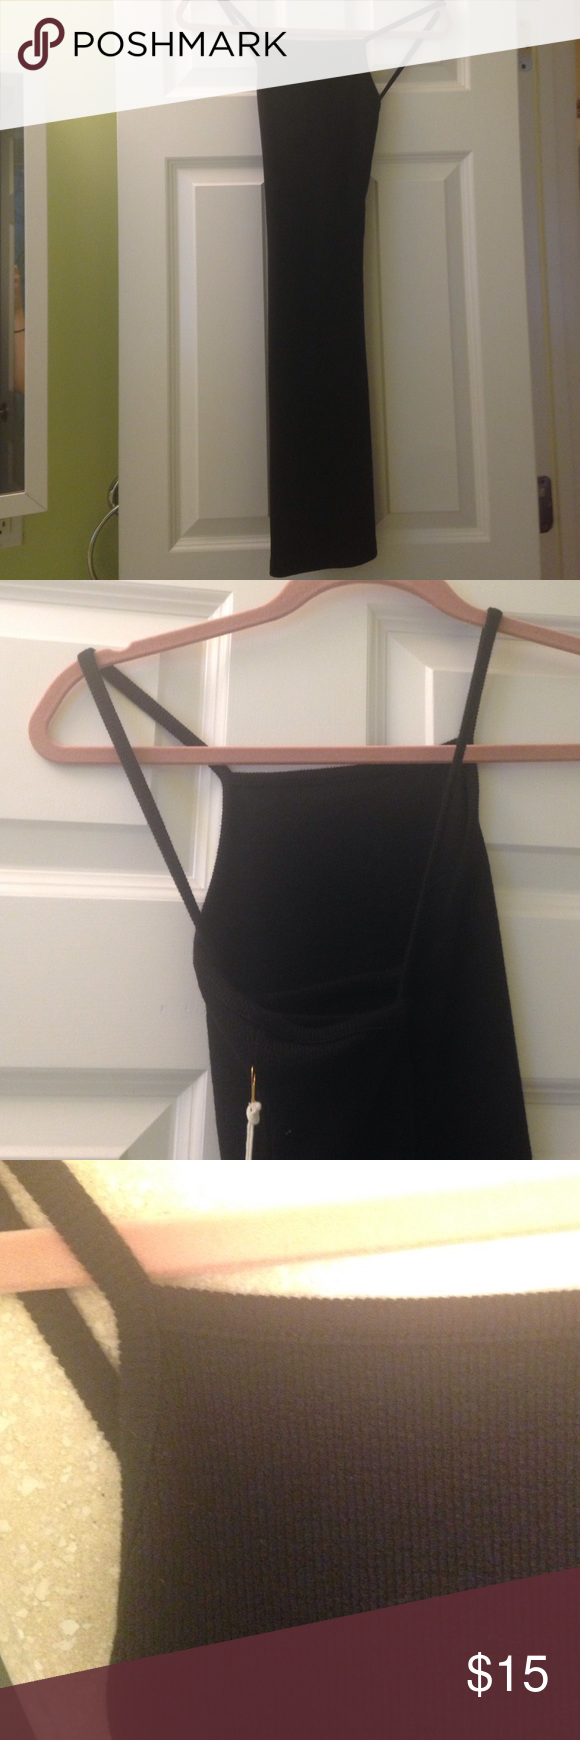 Bodycon black tank dress New never worn. Really cute and sexy..black tight and bodycon but casual material.. Comment any questions! Forever 21 Dresses